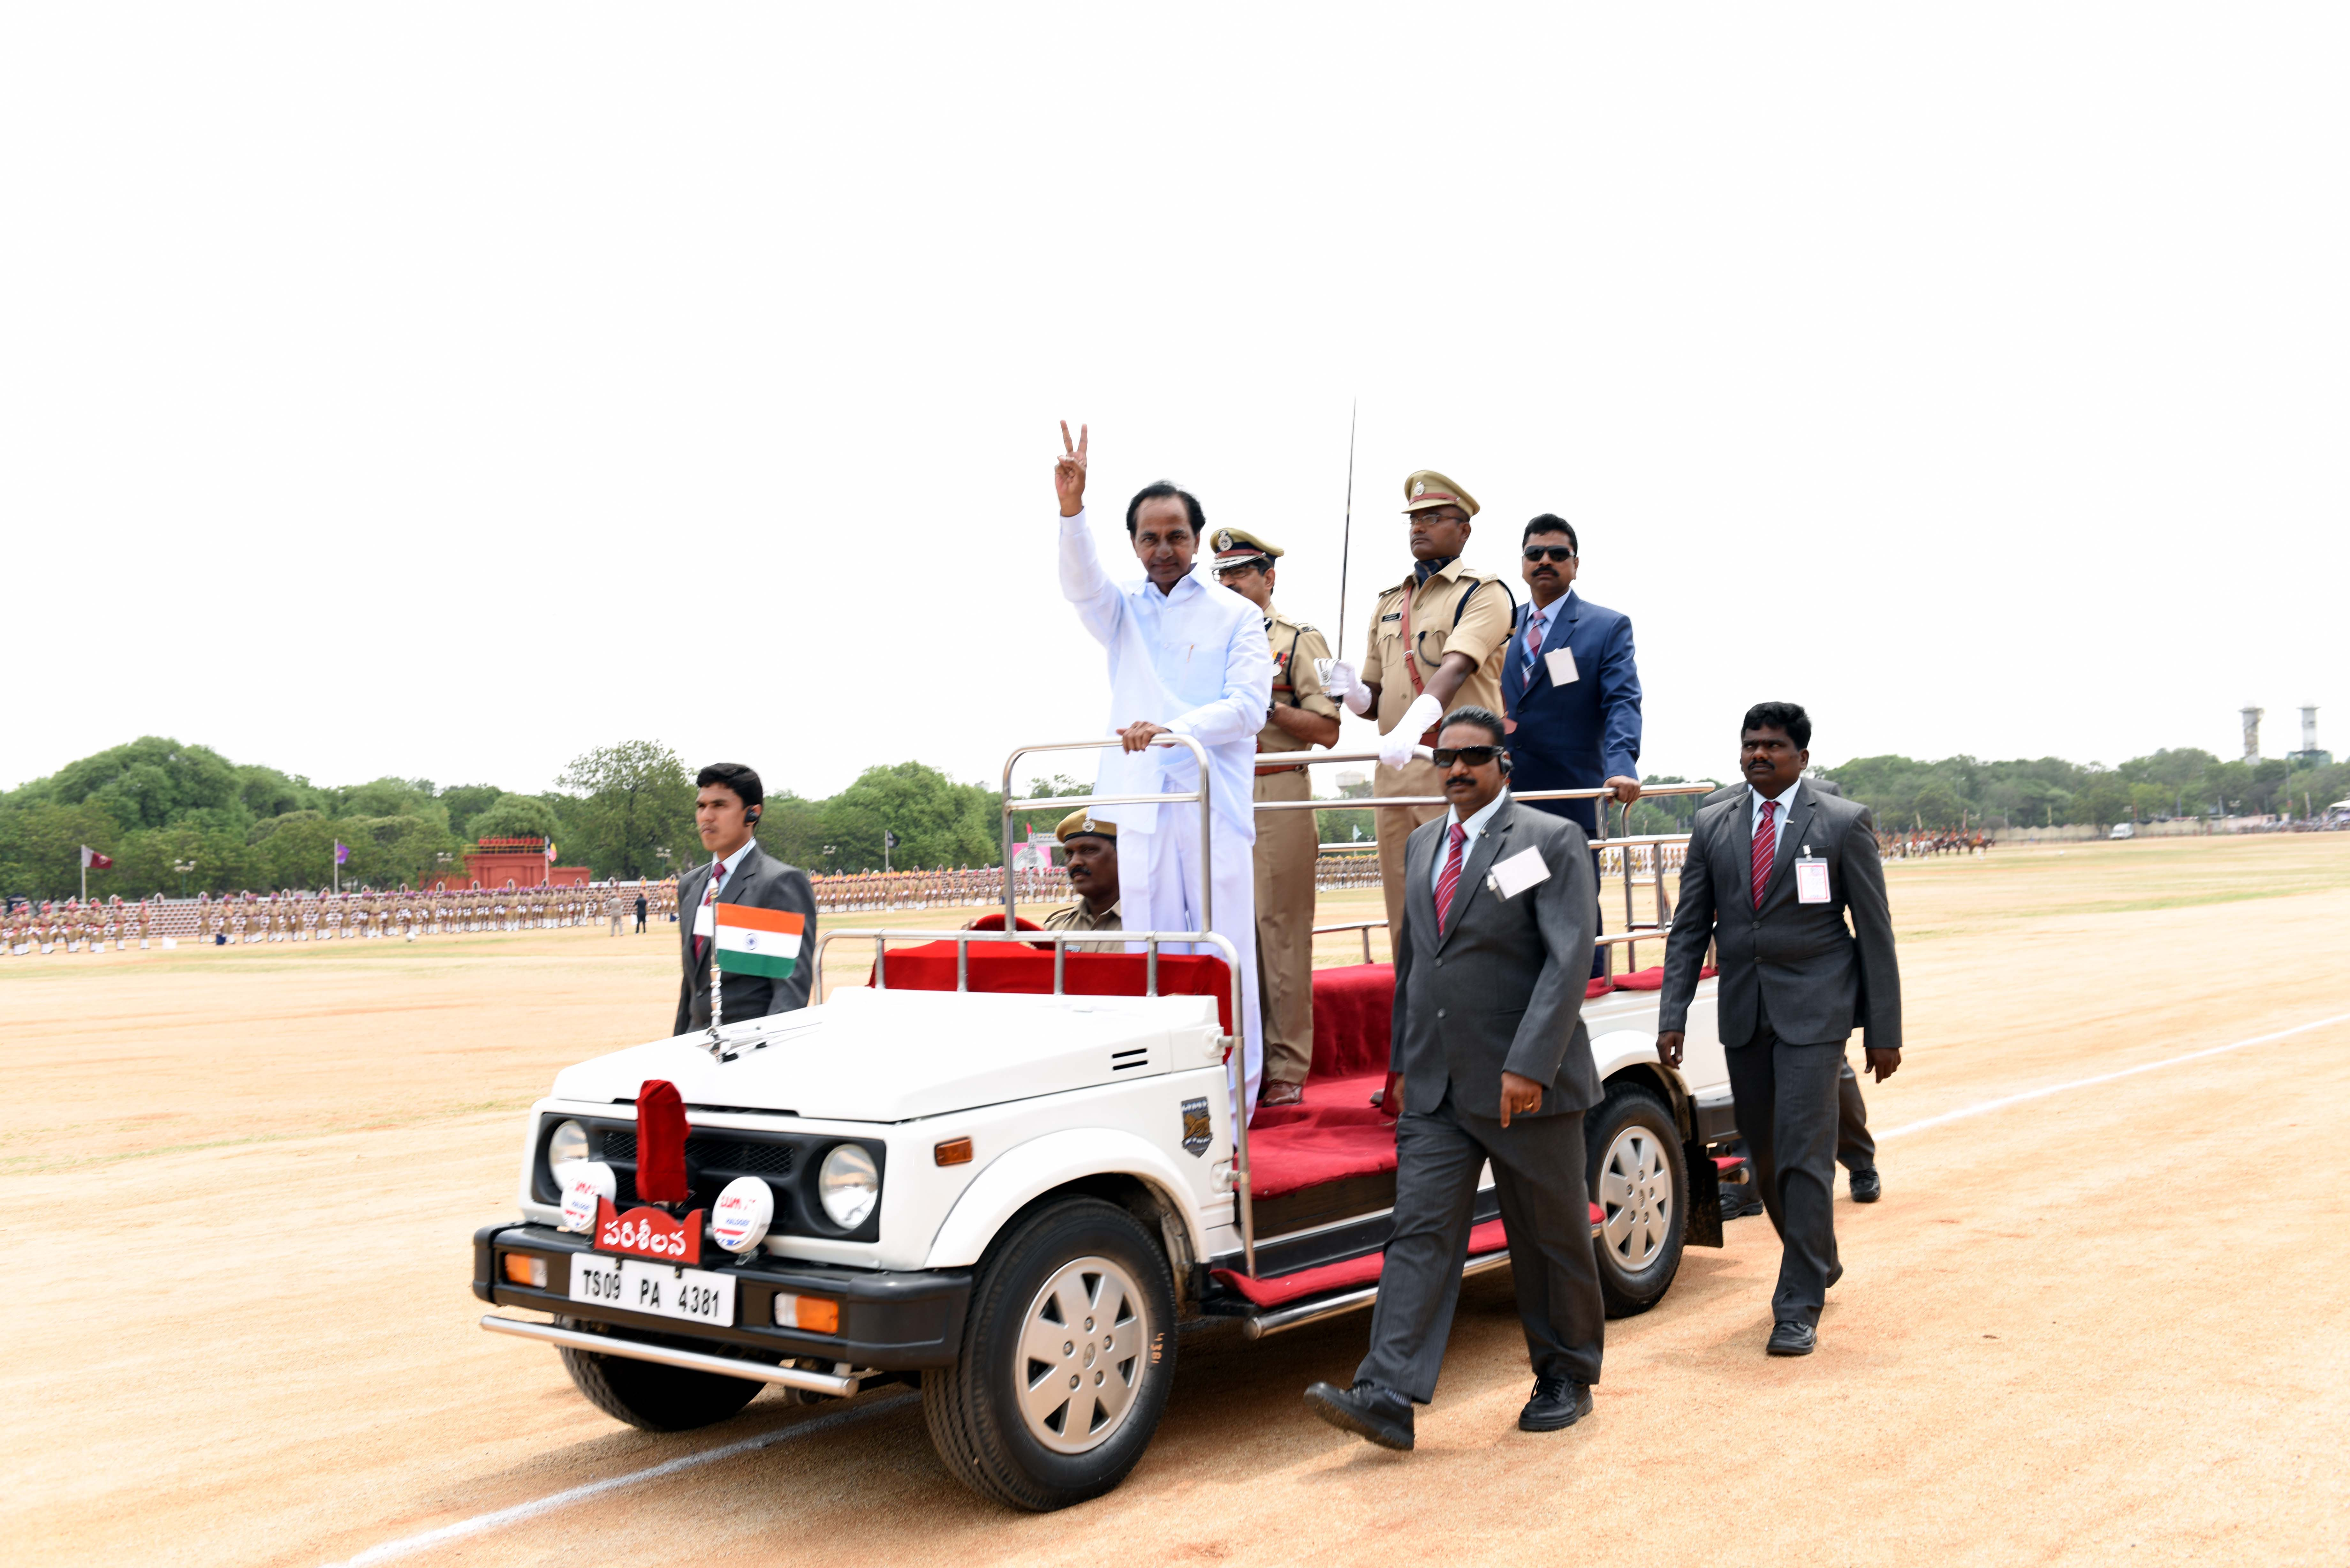 TS Chief Minister K. Chandrashekhar Rao Hoisted the Commemorative National Flag at Sanjeevaiah Park, Secunderabad on 02-06-2016.